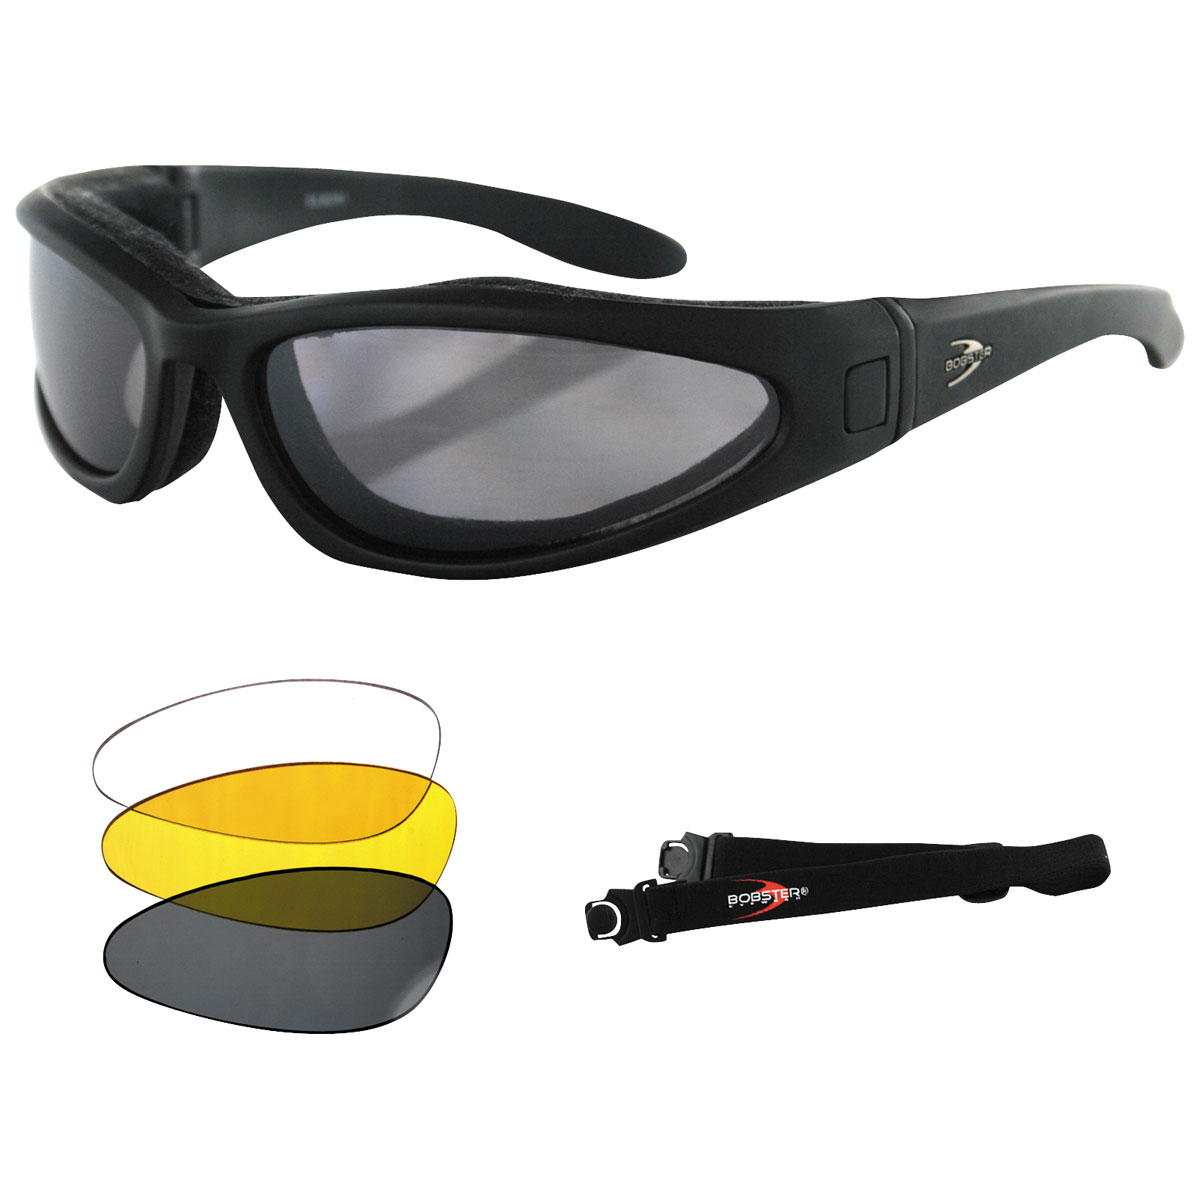 Bobster Lowrider II Convertible and Interchangeable Sunglasses